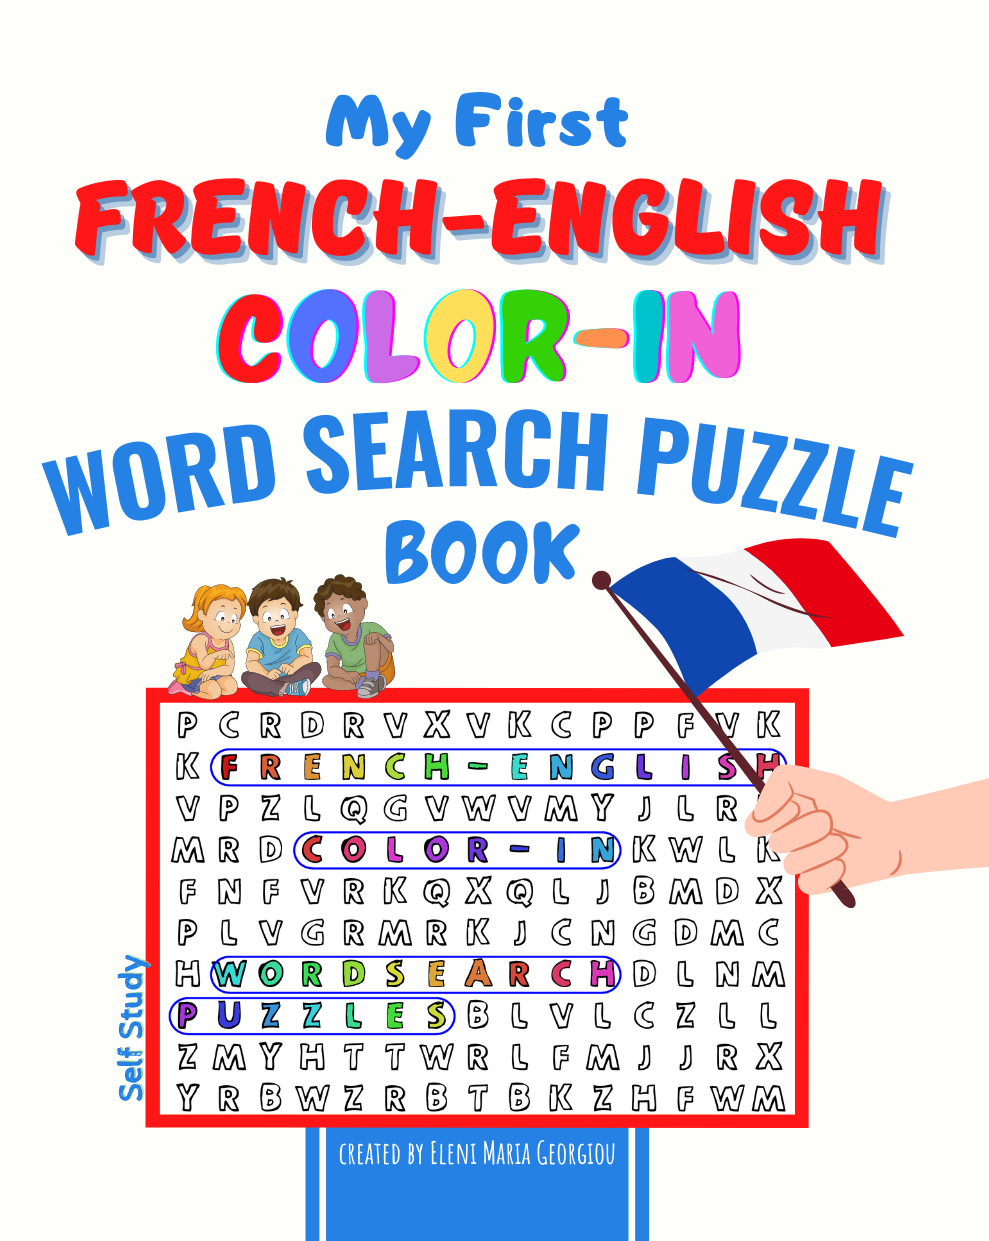 My First French-English Color-In Word Search Puzzle Book